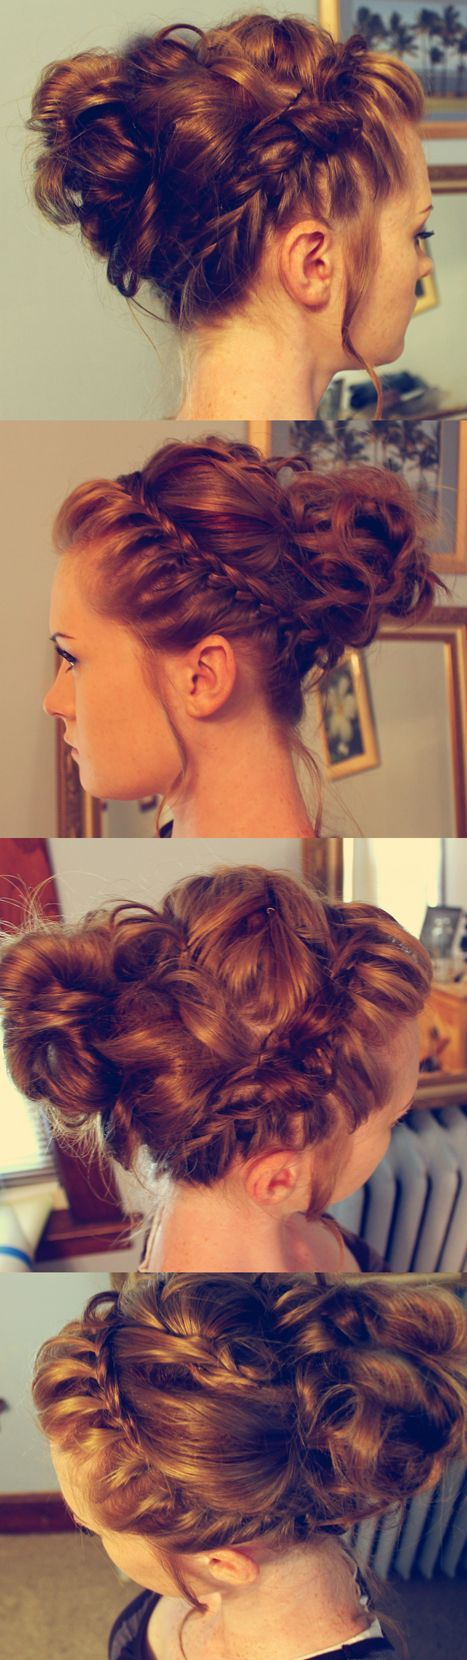 Bun with Crown Braid. I don't like many up dos, but I like this one.